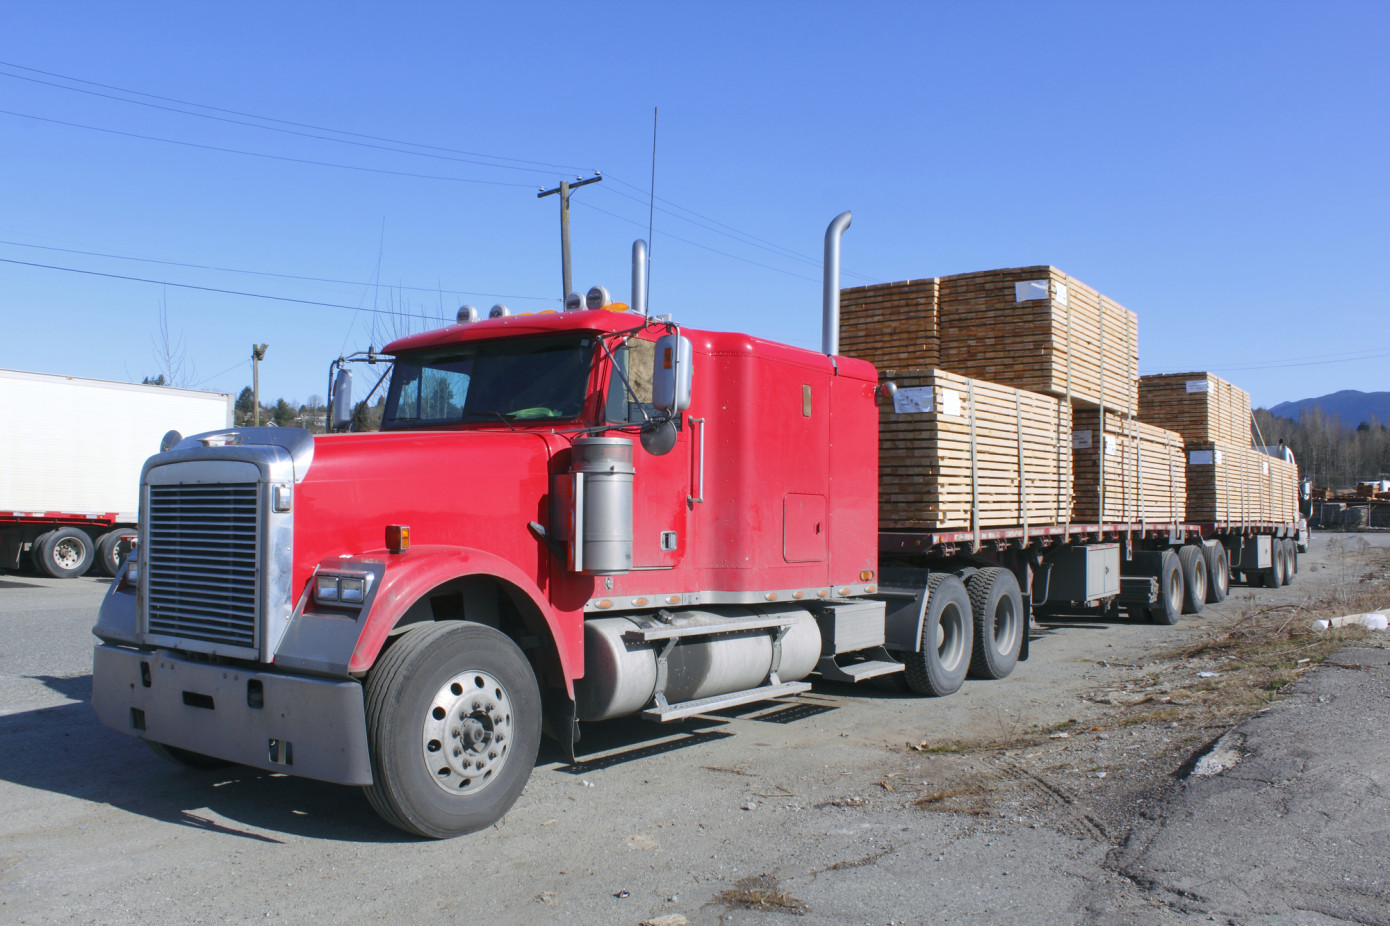 Prices for Canadian softwood lumber in the U.S. increase 6% in August 2021